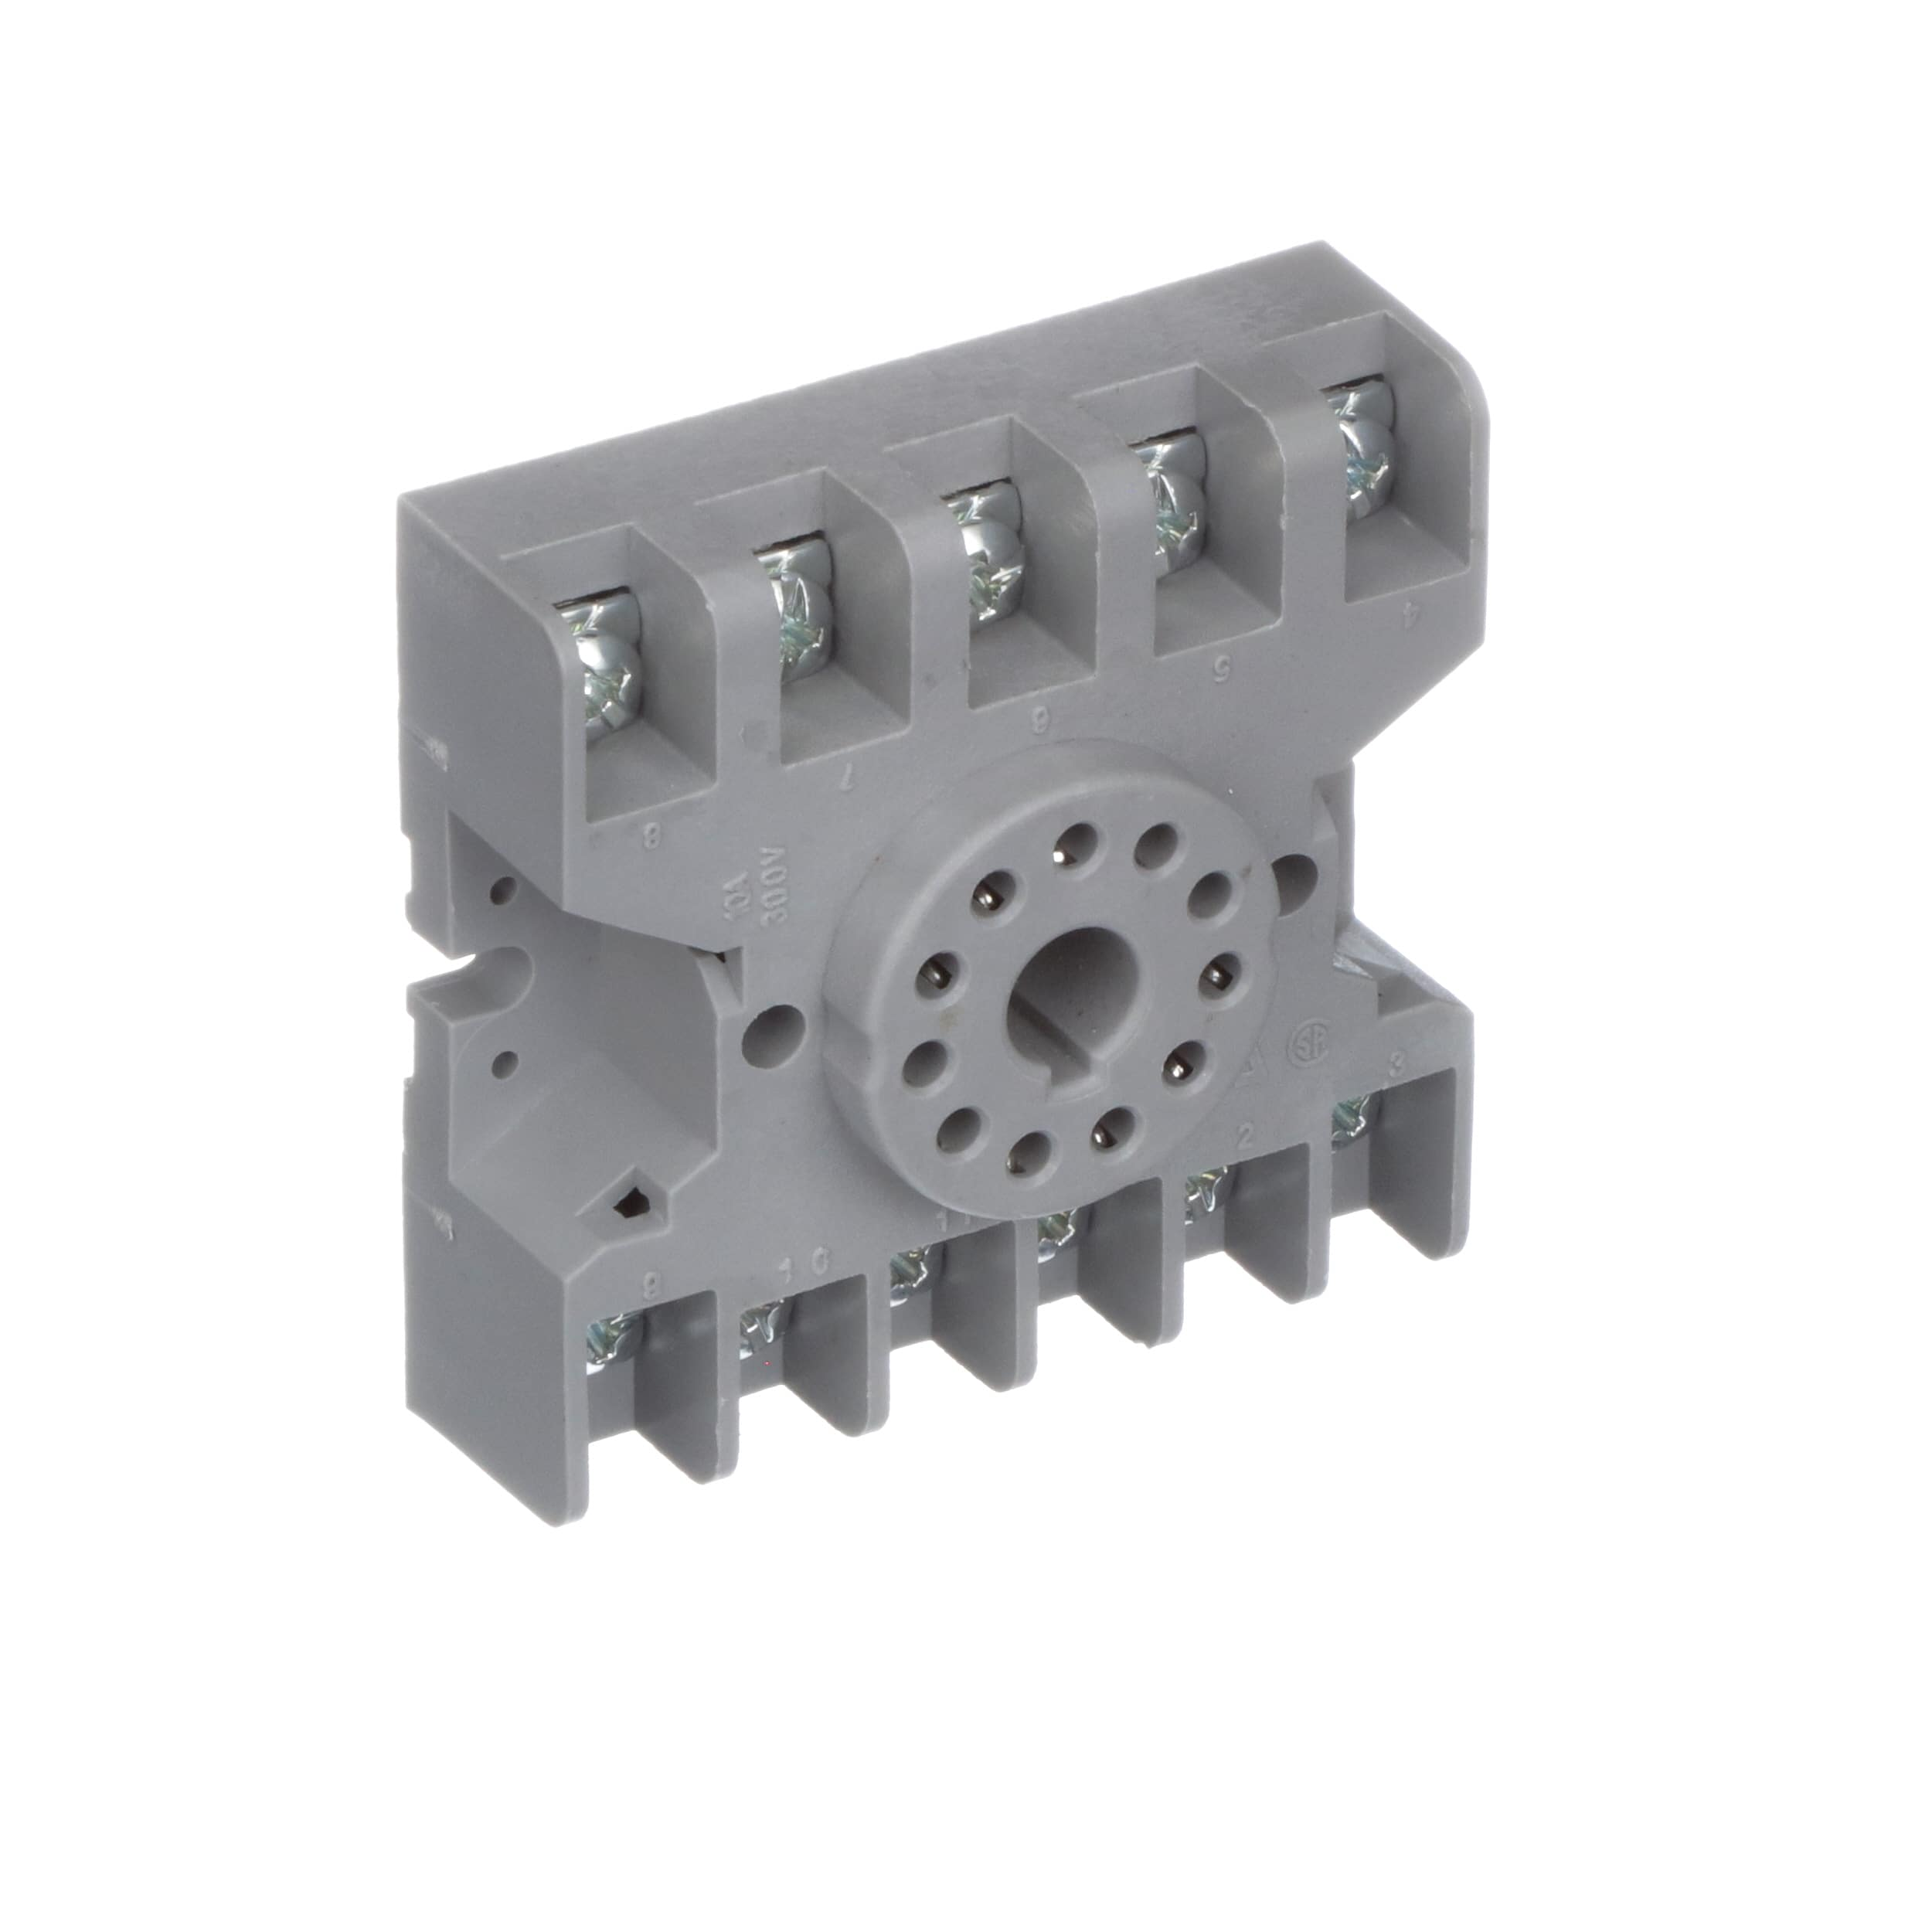 Te Connectivity 27e123 Socket Relay Screw Term 1 3 Pole Power Products Accessories Pin Plug Wiring Rohscompliant Elv Compliant 11 Octal Allied Electronics Automation